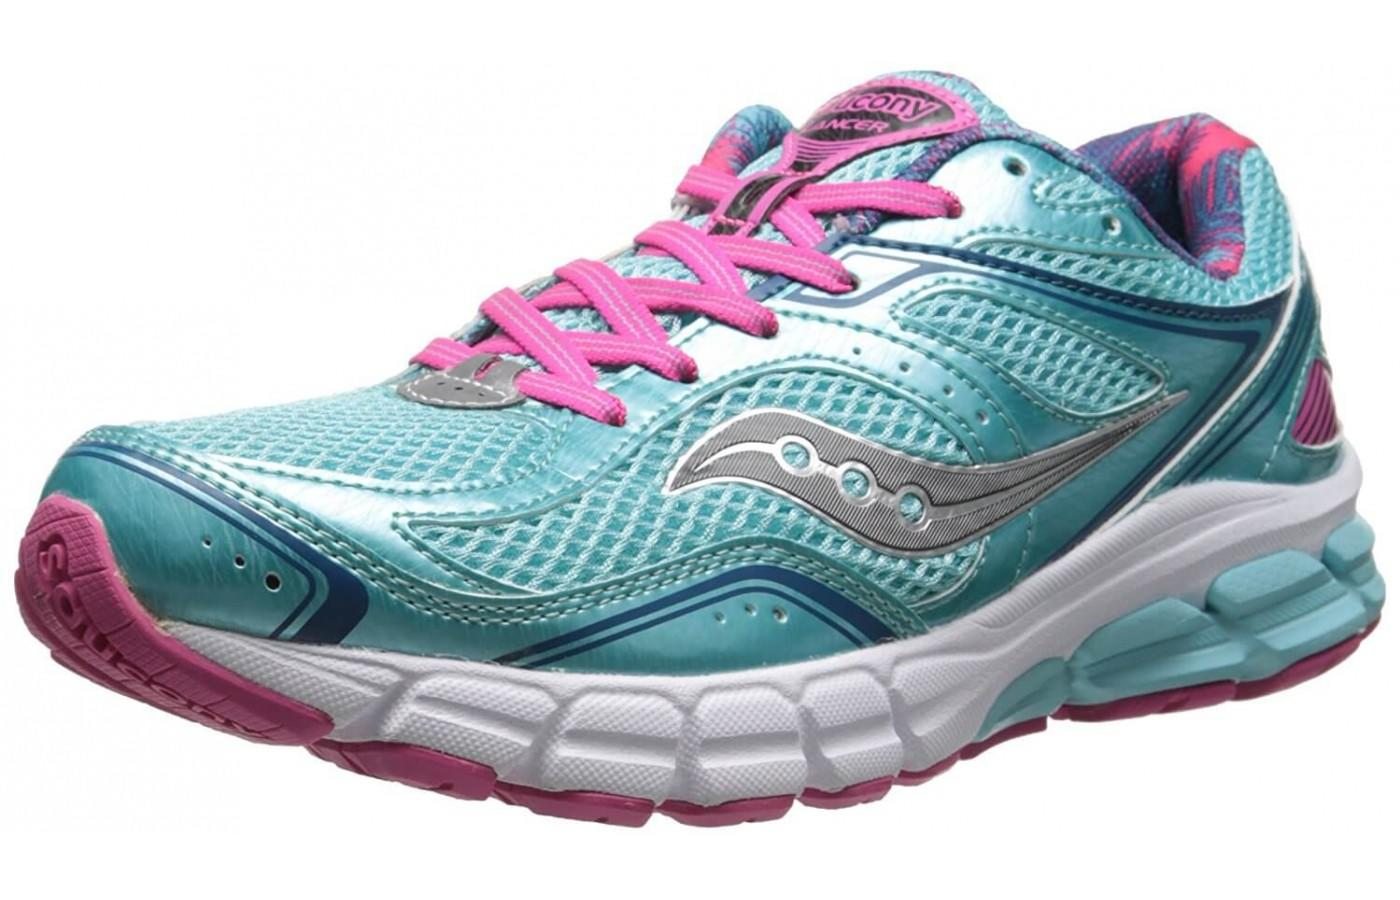 The Saucony Lancer is a high quality, lost cost running shoe.